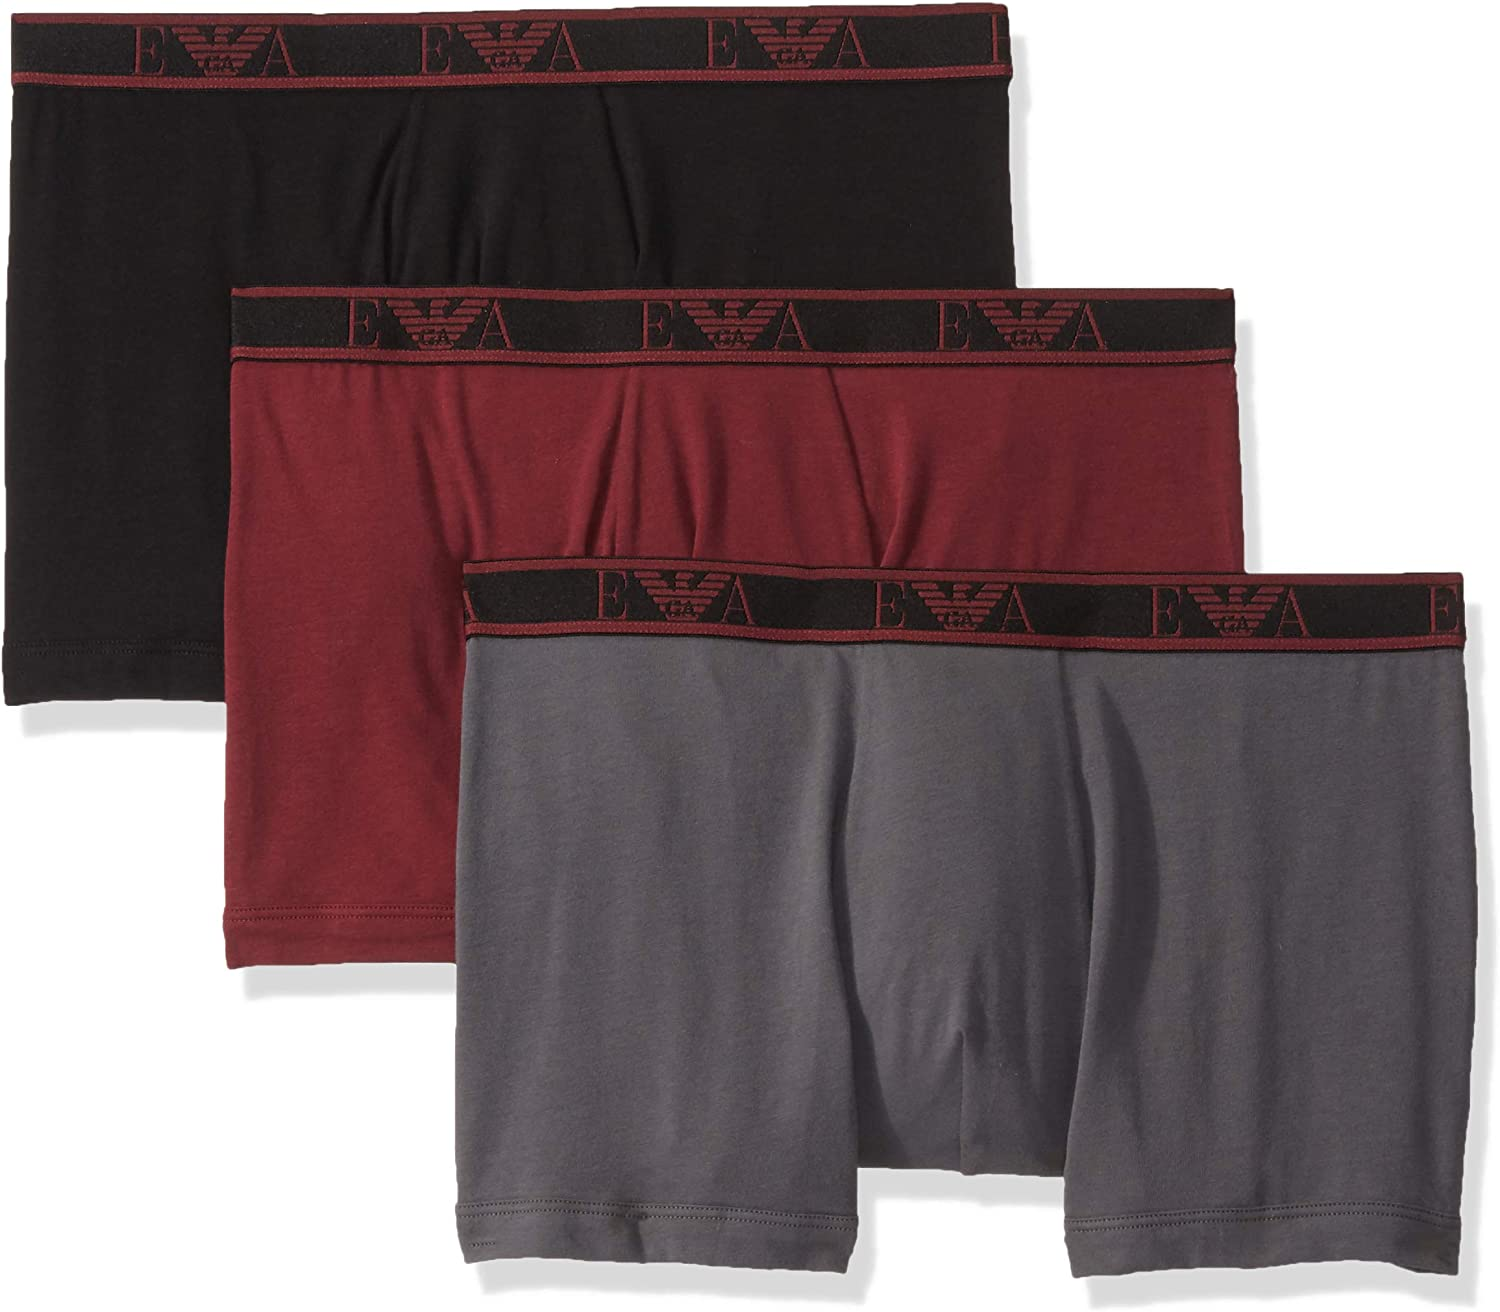 Emporio Armani Men's Monogram 3-Pack Boxer Brief